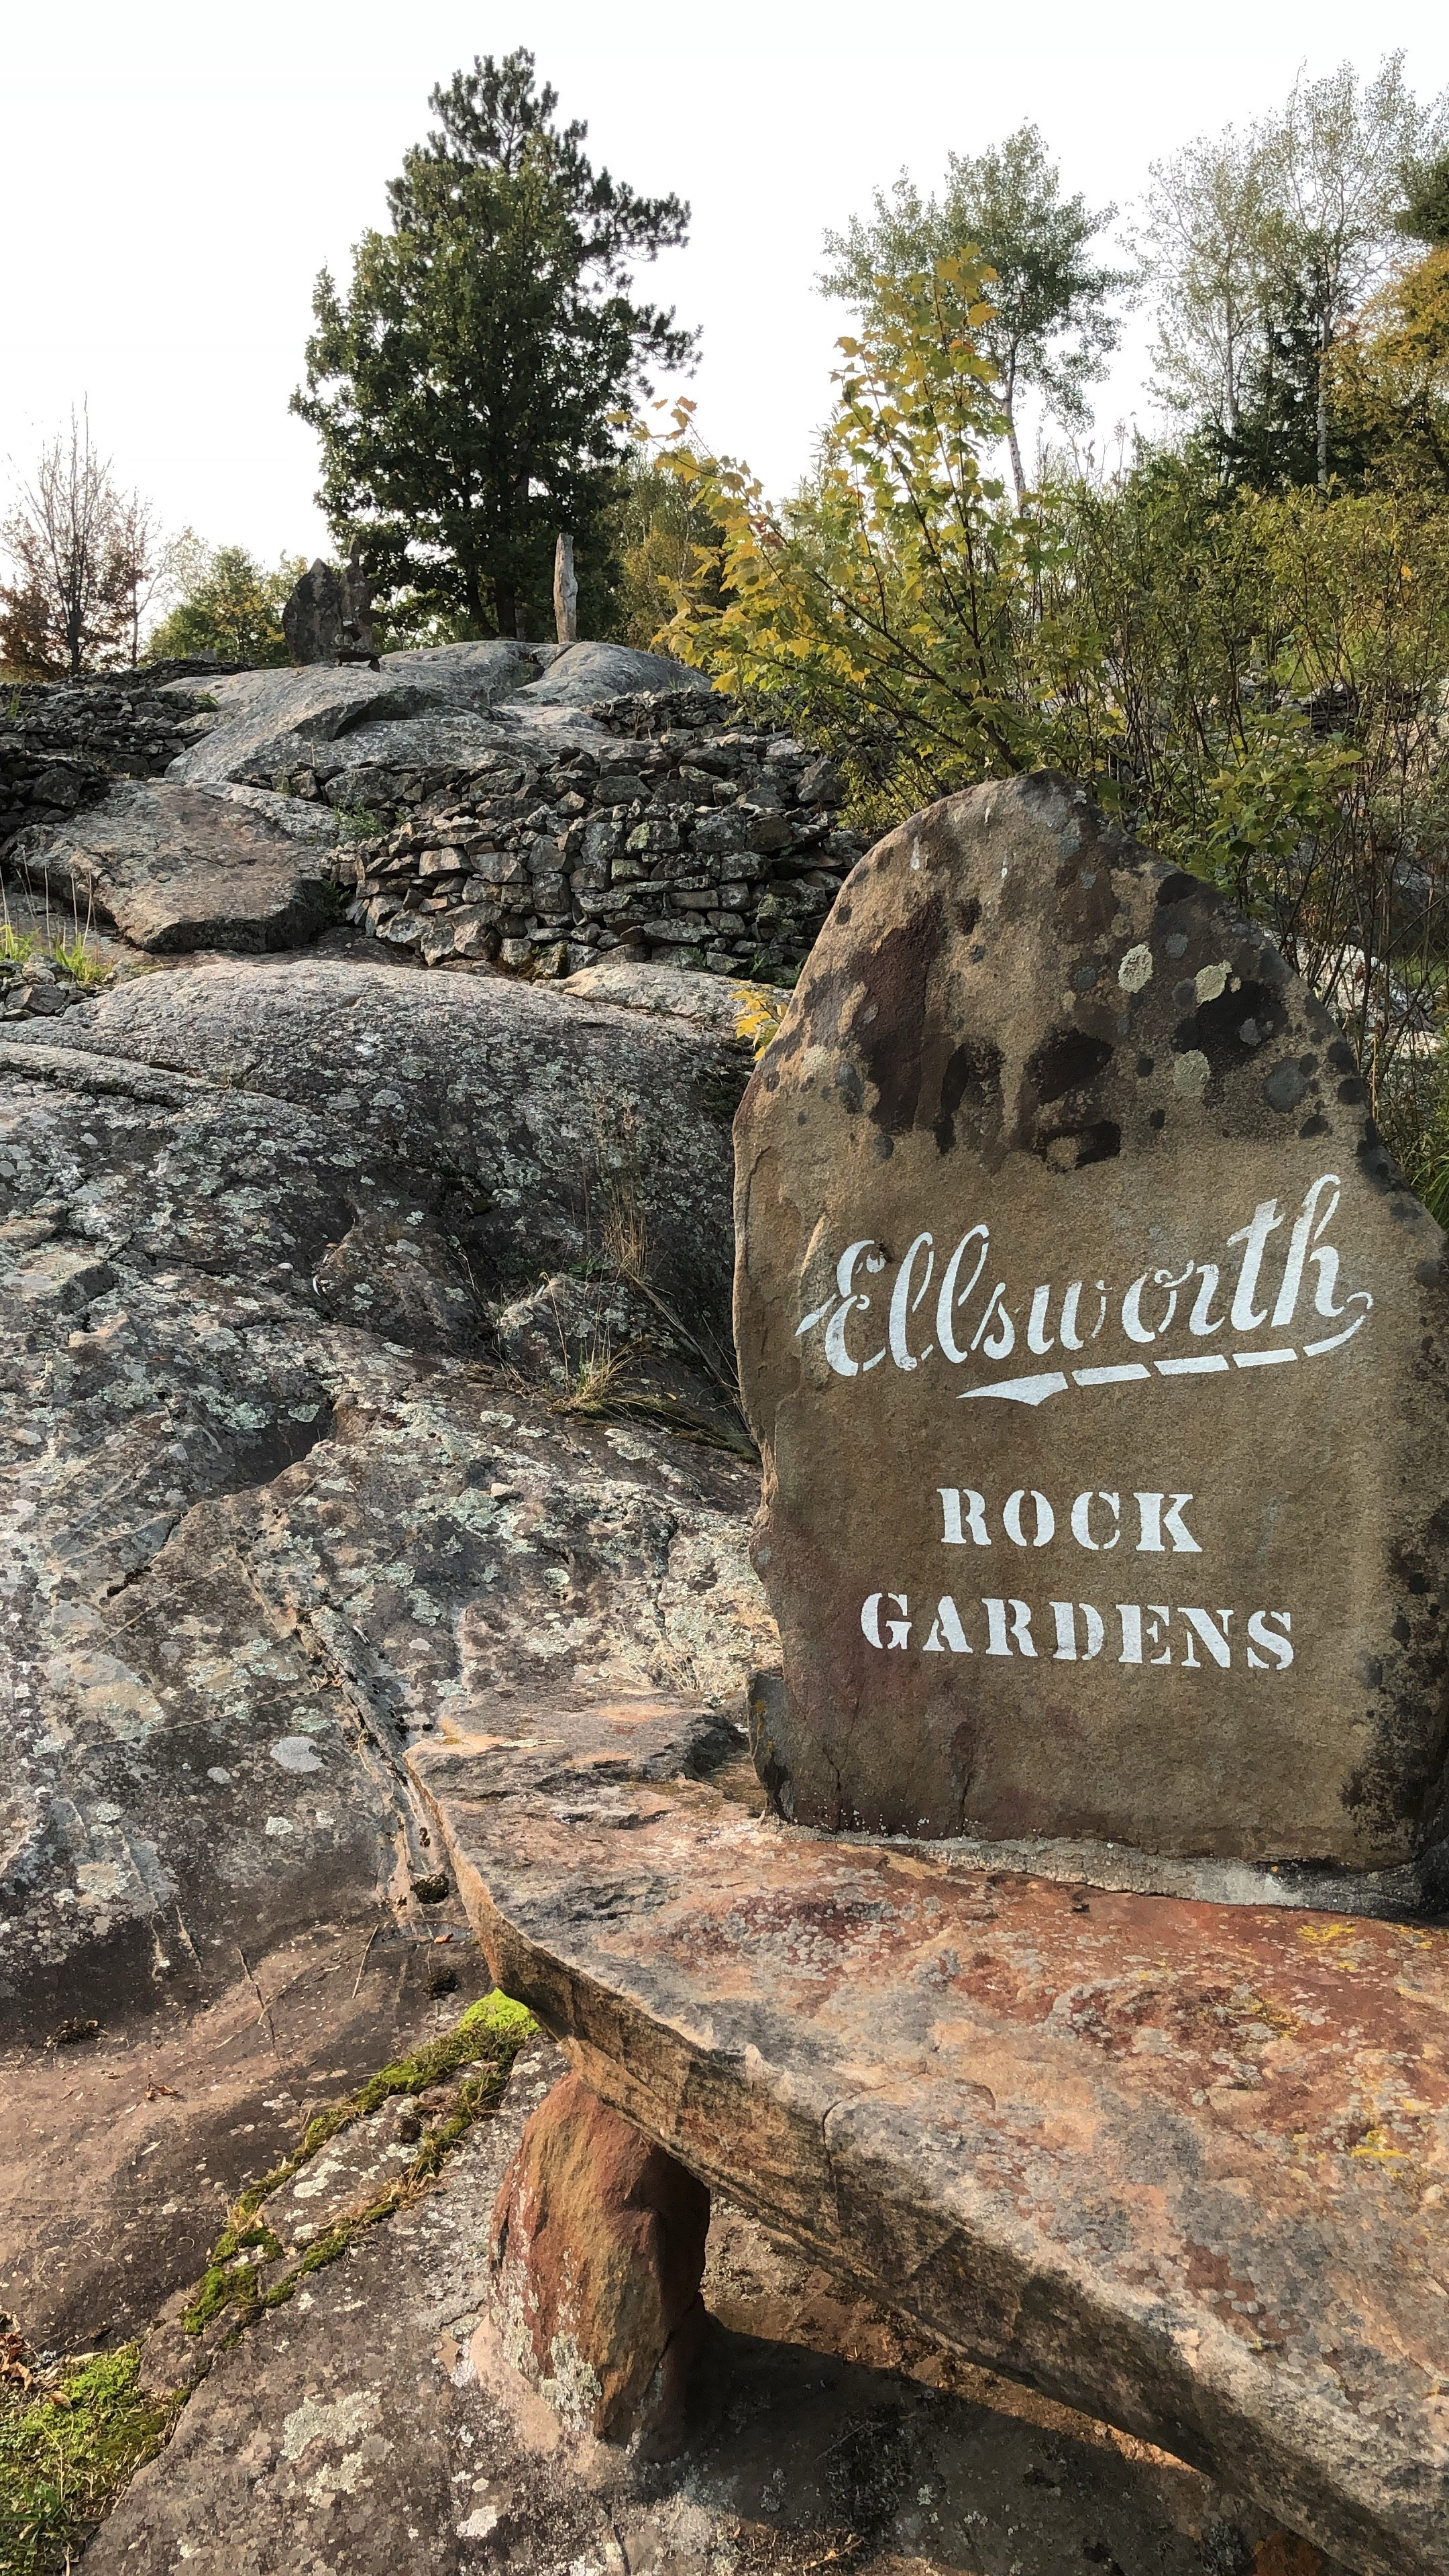 Ellsworth Rock Gardens Sign